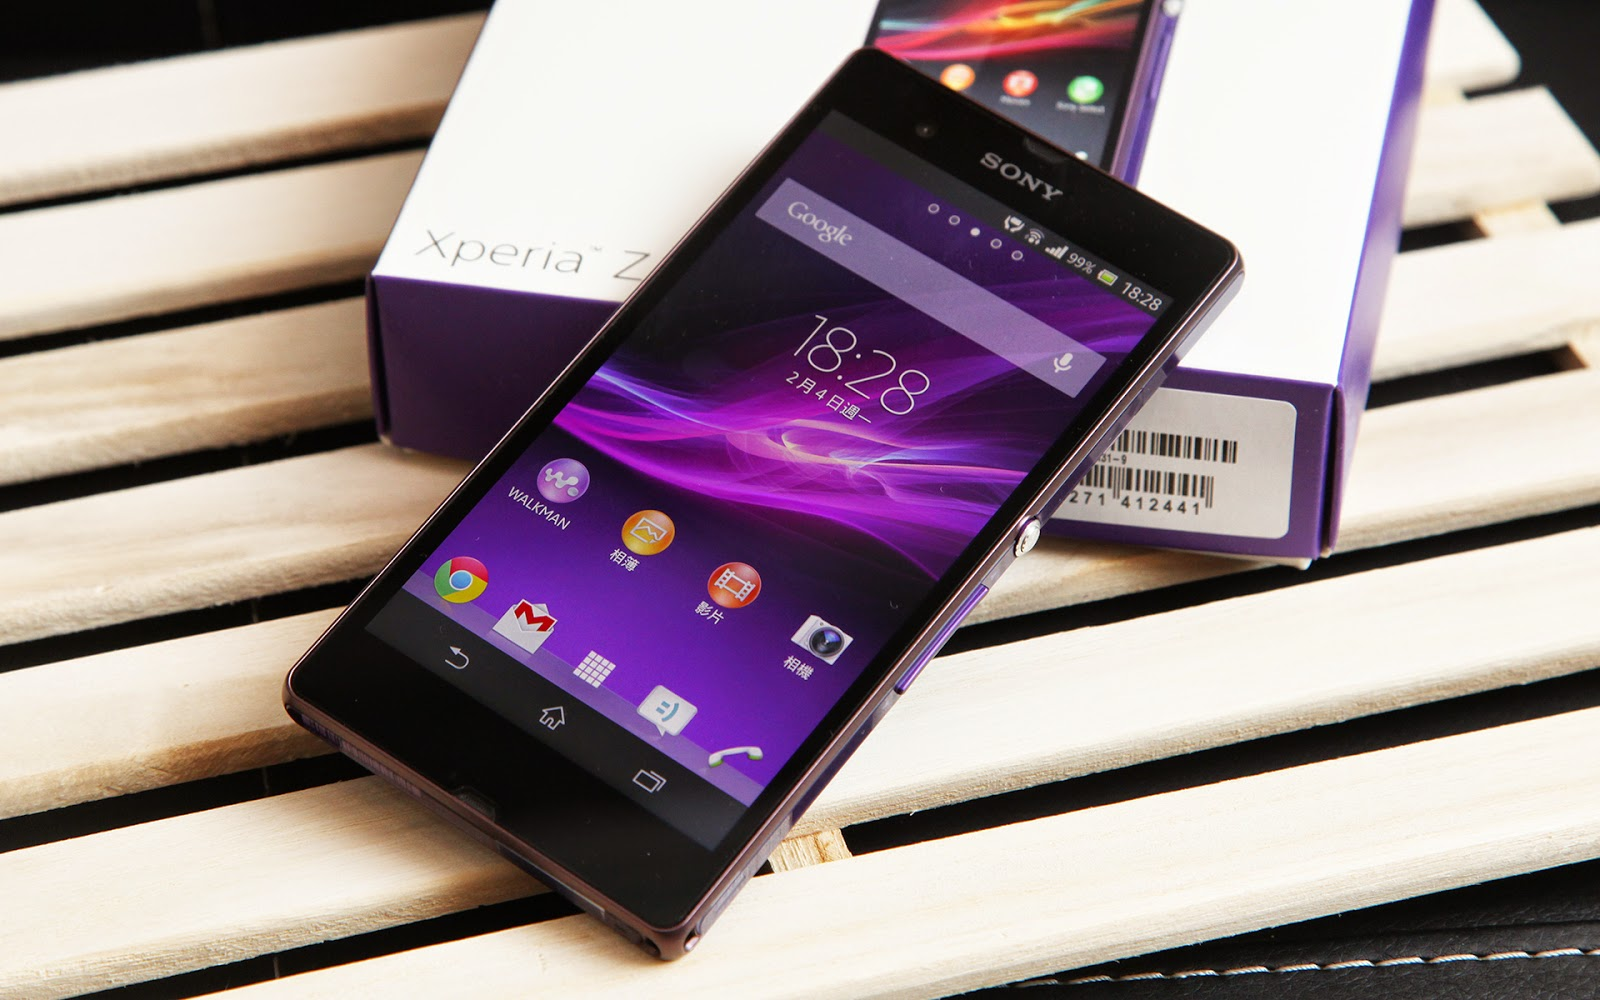 review ponsel android sony xperia z